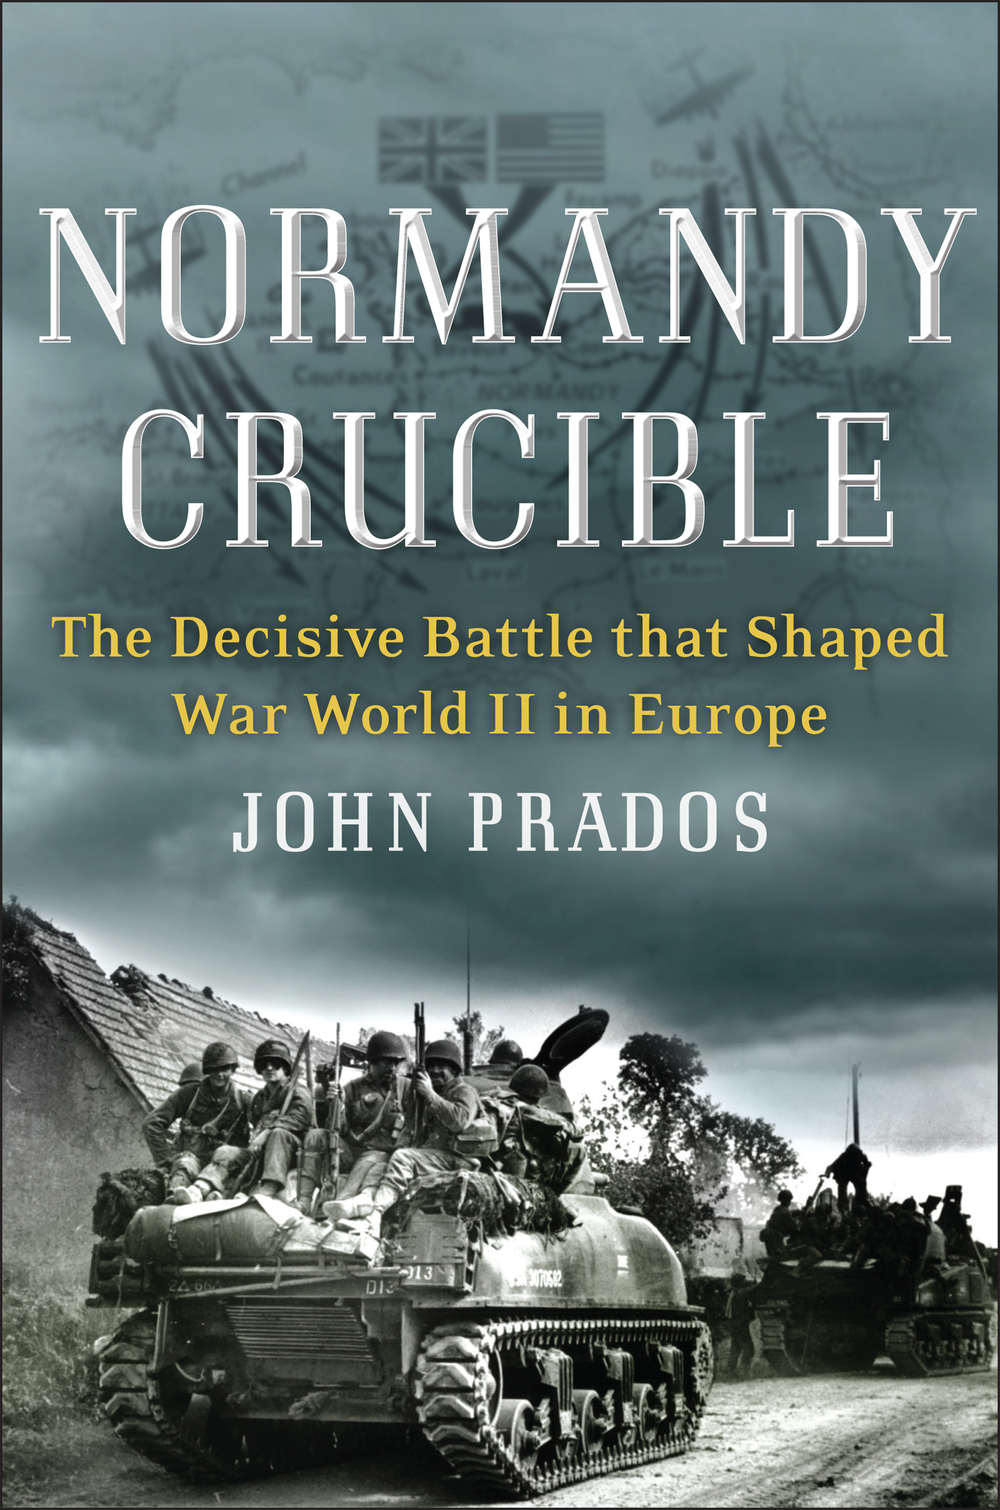 NORMANDY-CRUCIBLE-hc-ss6.jpg